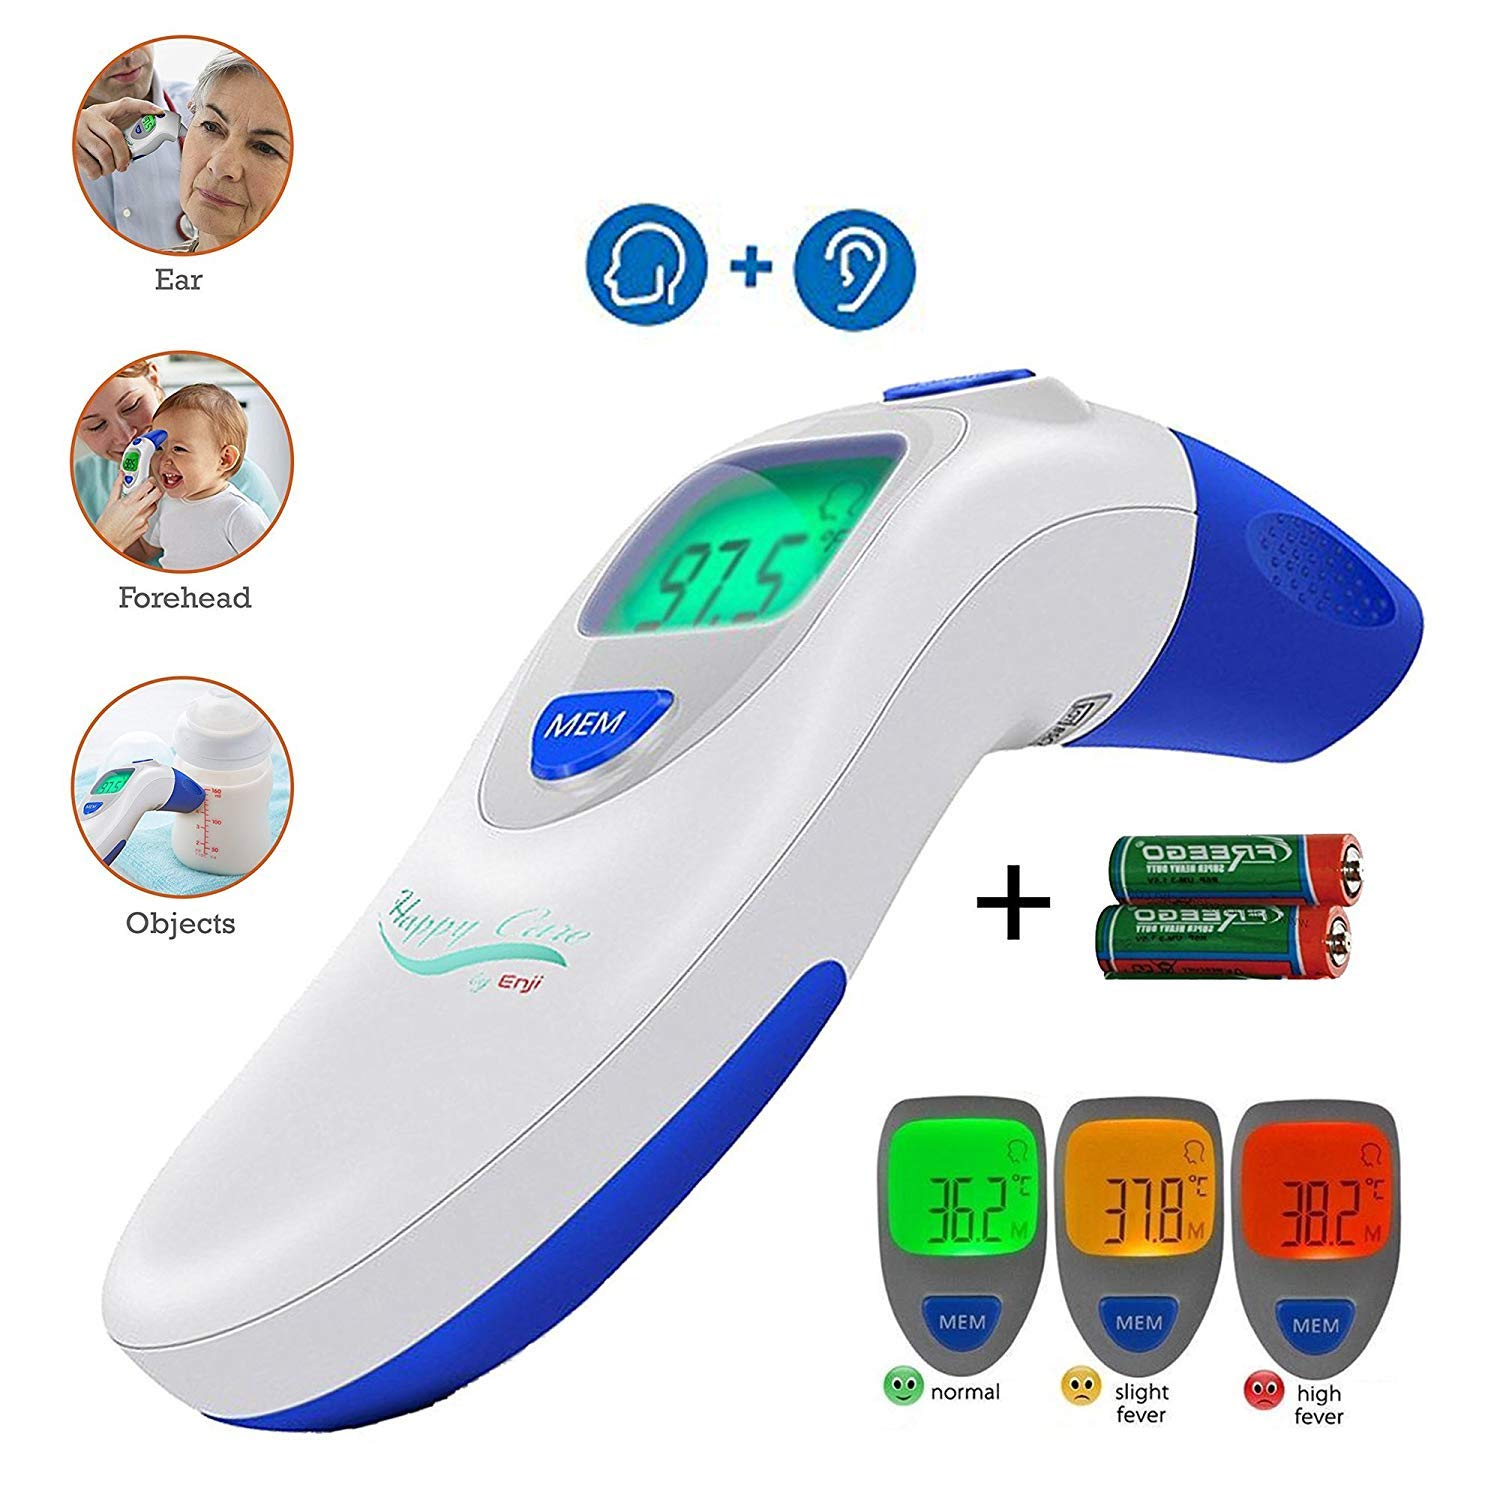 Ear and Forehead Digital Thermometer - Temporal Electronic Infrared, Dual F & C Temperature Mode, Fast 1 Second Read, for Fever, Baby, Children's, Kids & Adults, Ear Termometro